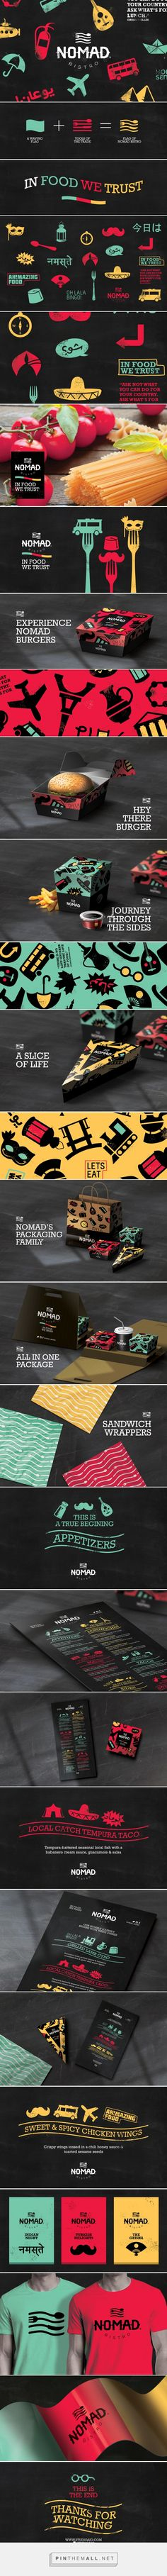 Nomad Bistro Branding by Studio AIO on Behance | Fivestar Branding – Design and…